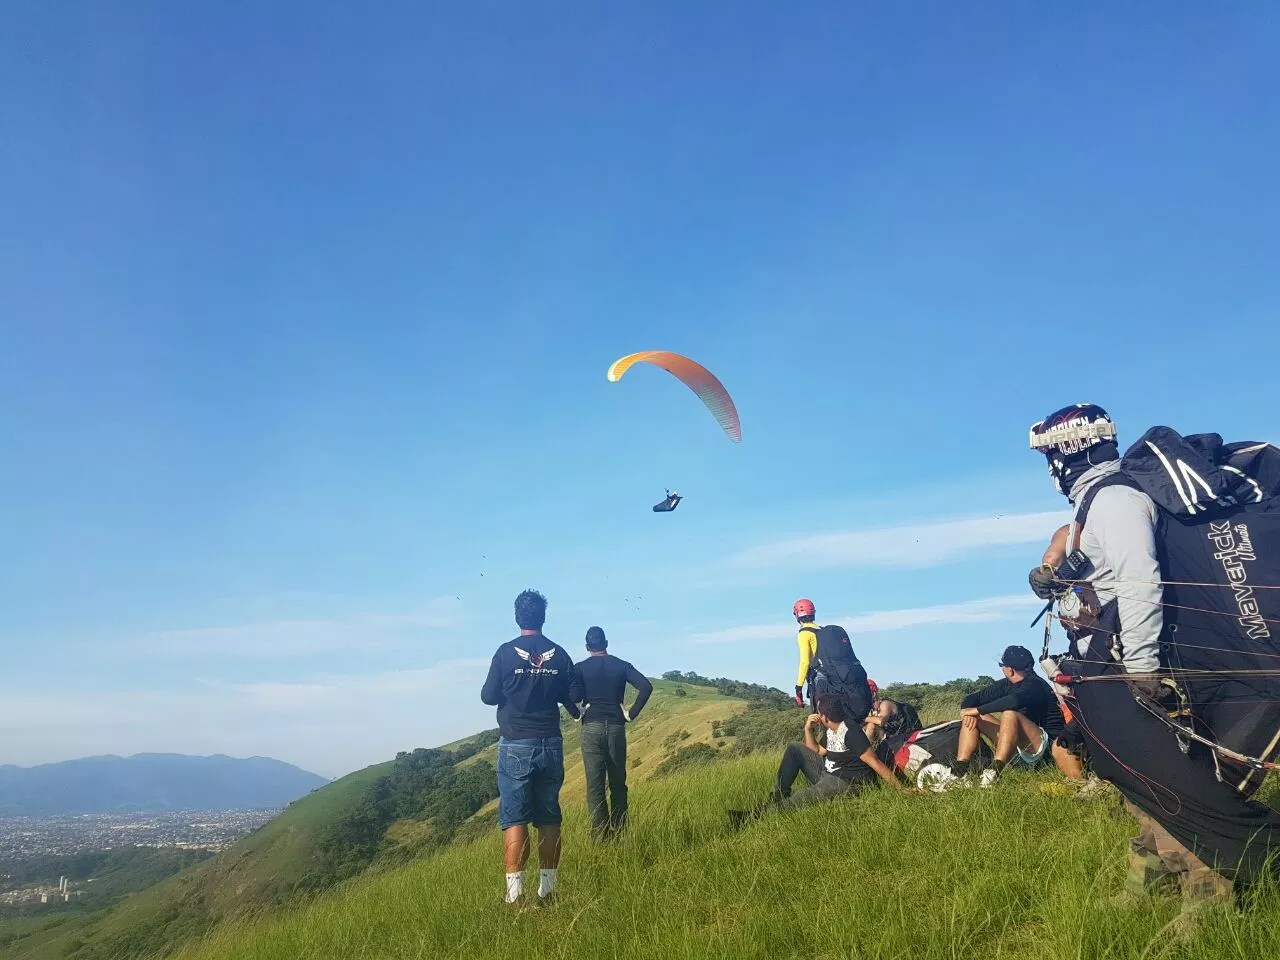 A group of people flying kites on a grassy hill - Paragliding